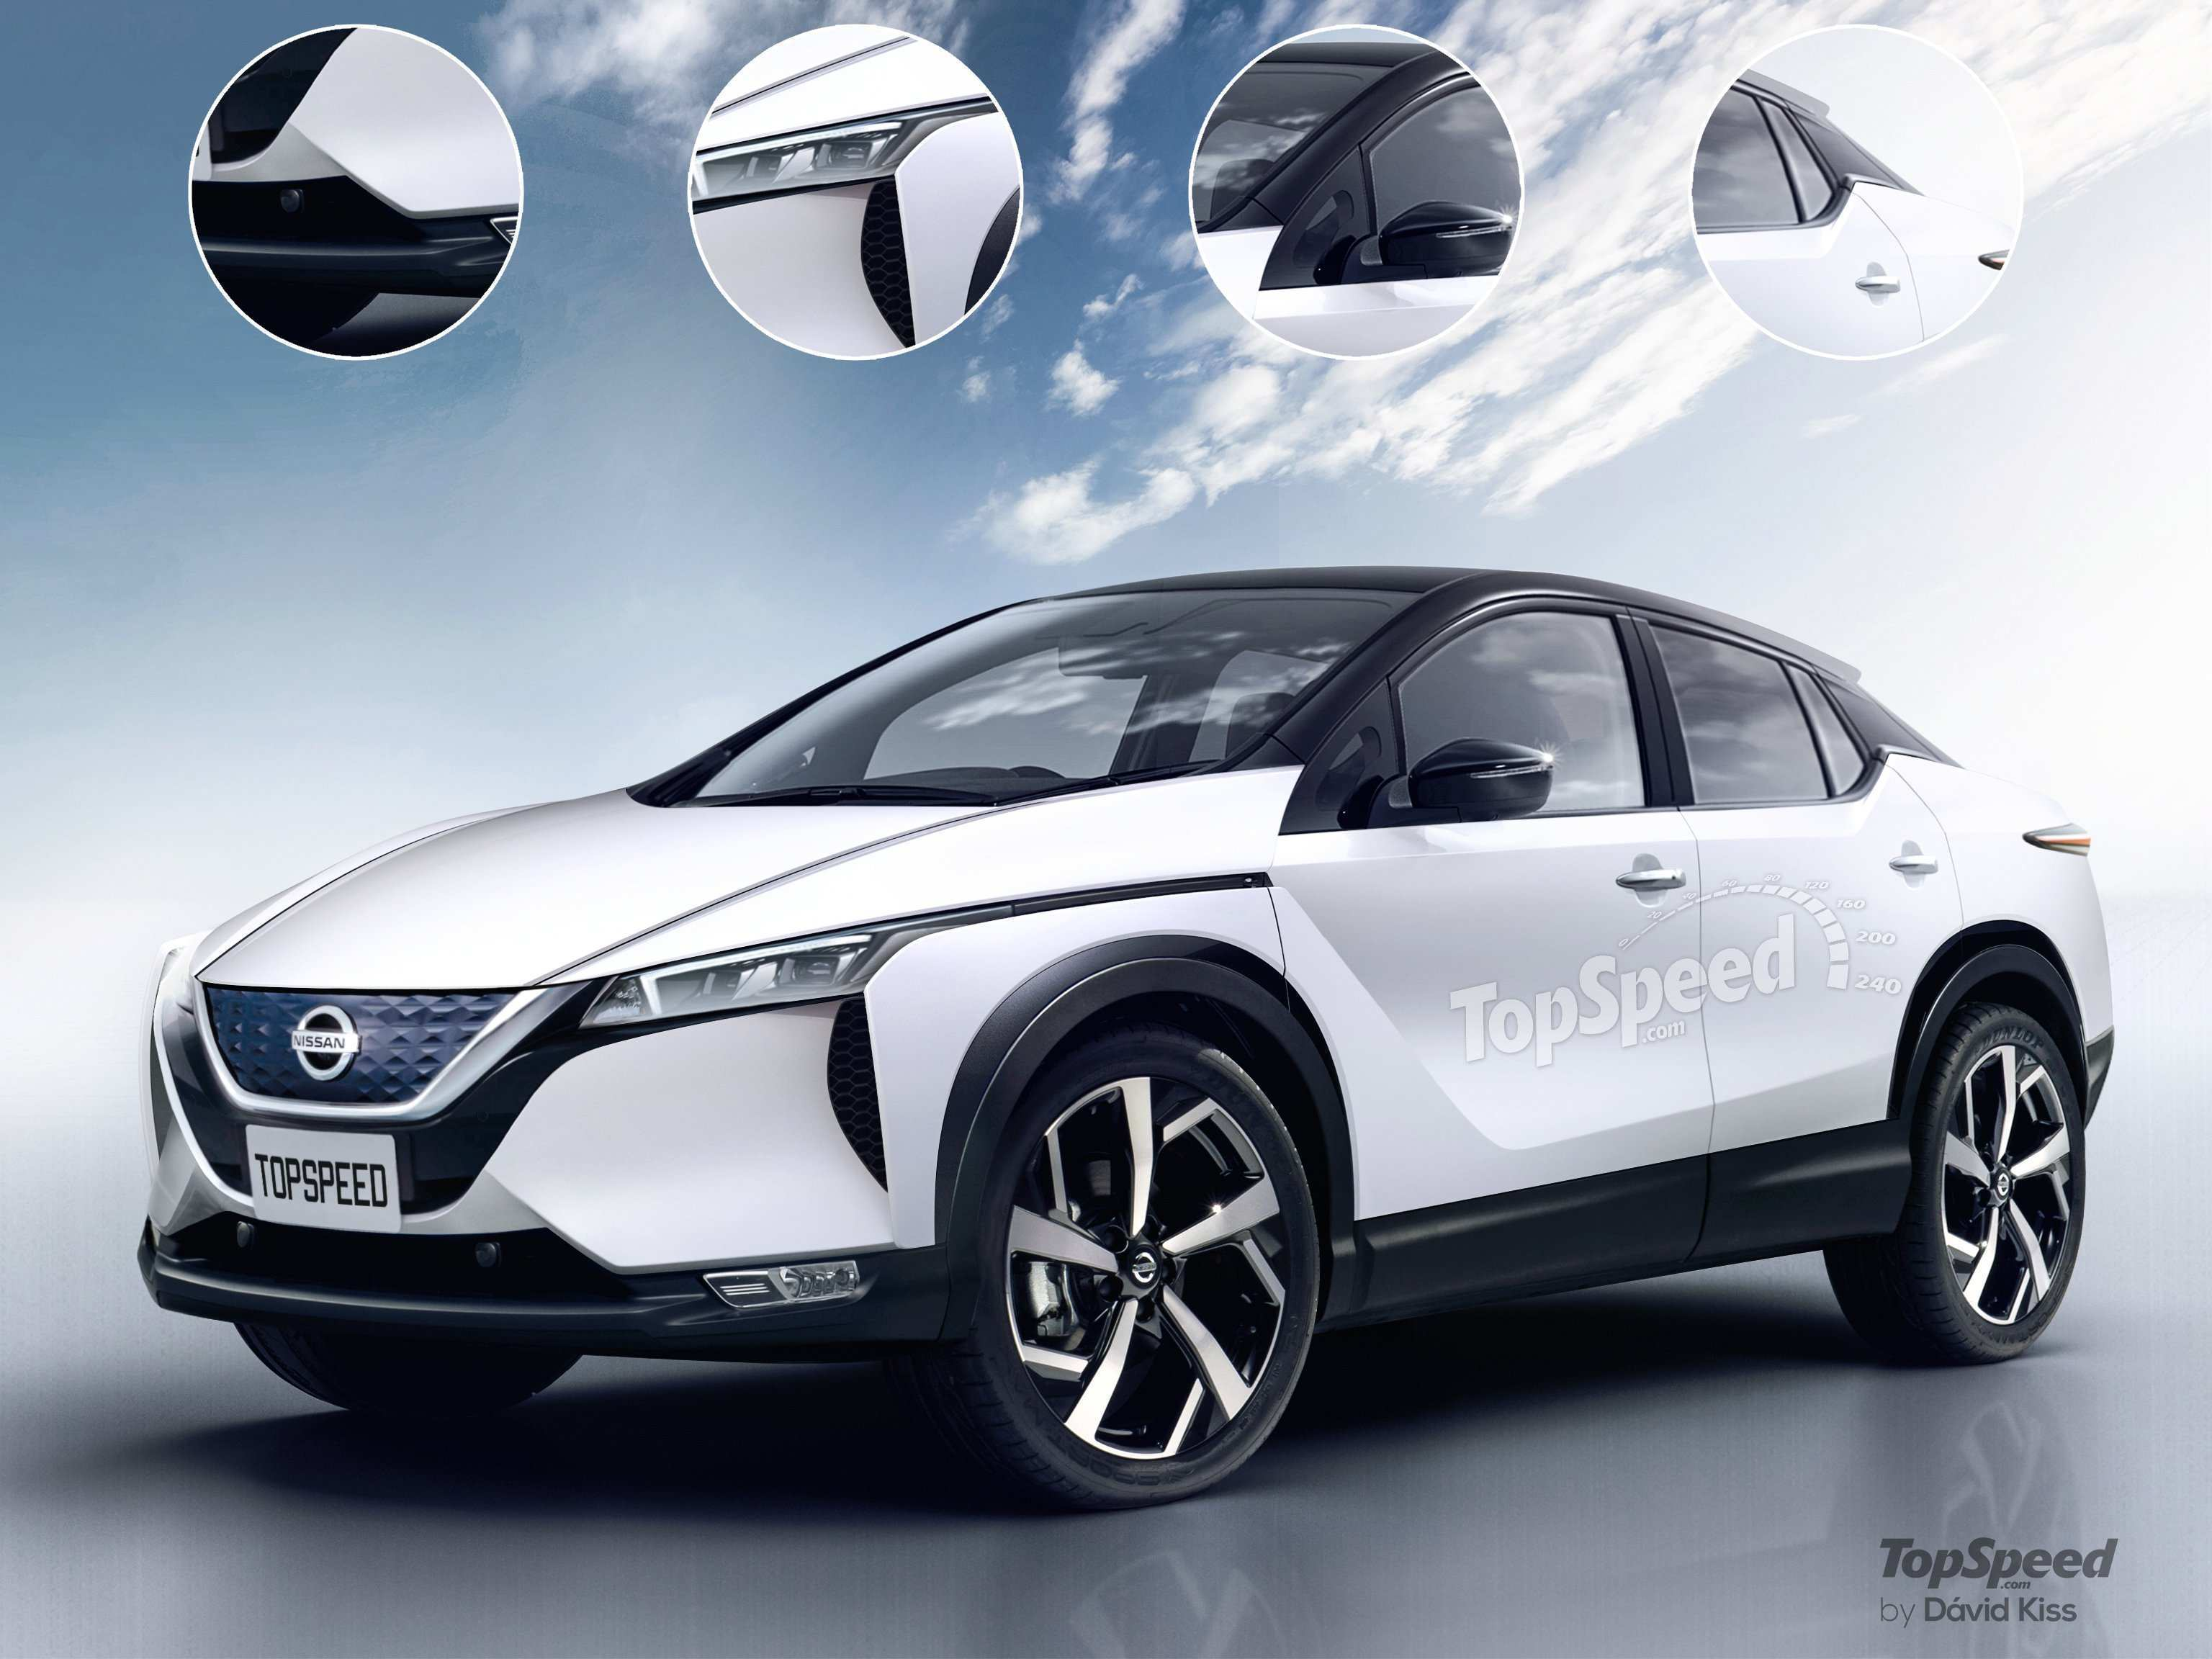 22 Concept of 2020 Nissan Pathfinder New Concept Exterior by 2020 Nissan Pathfinder New Concept